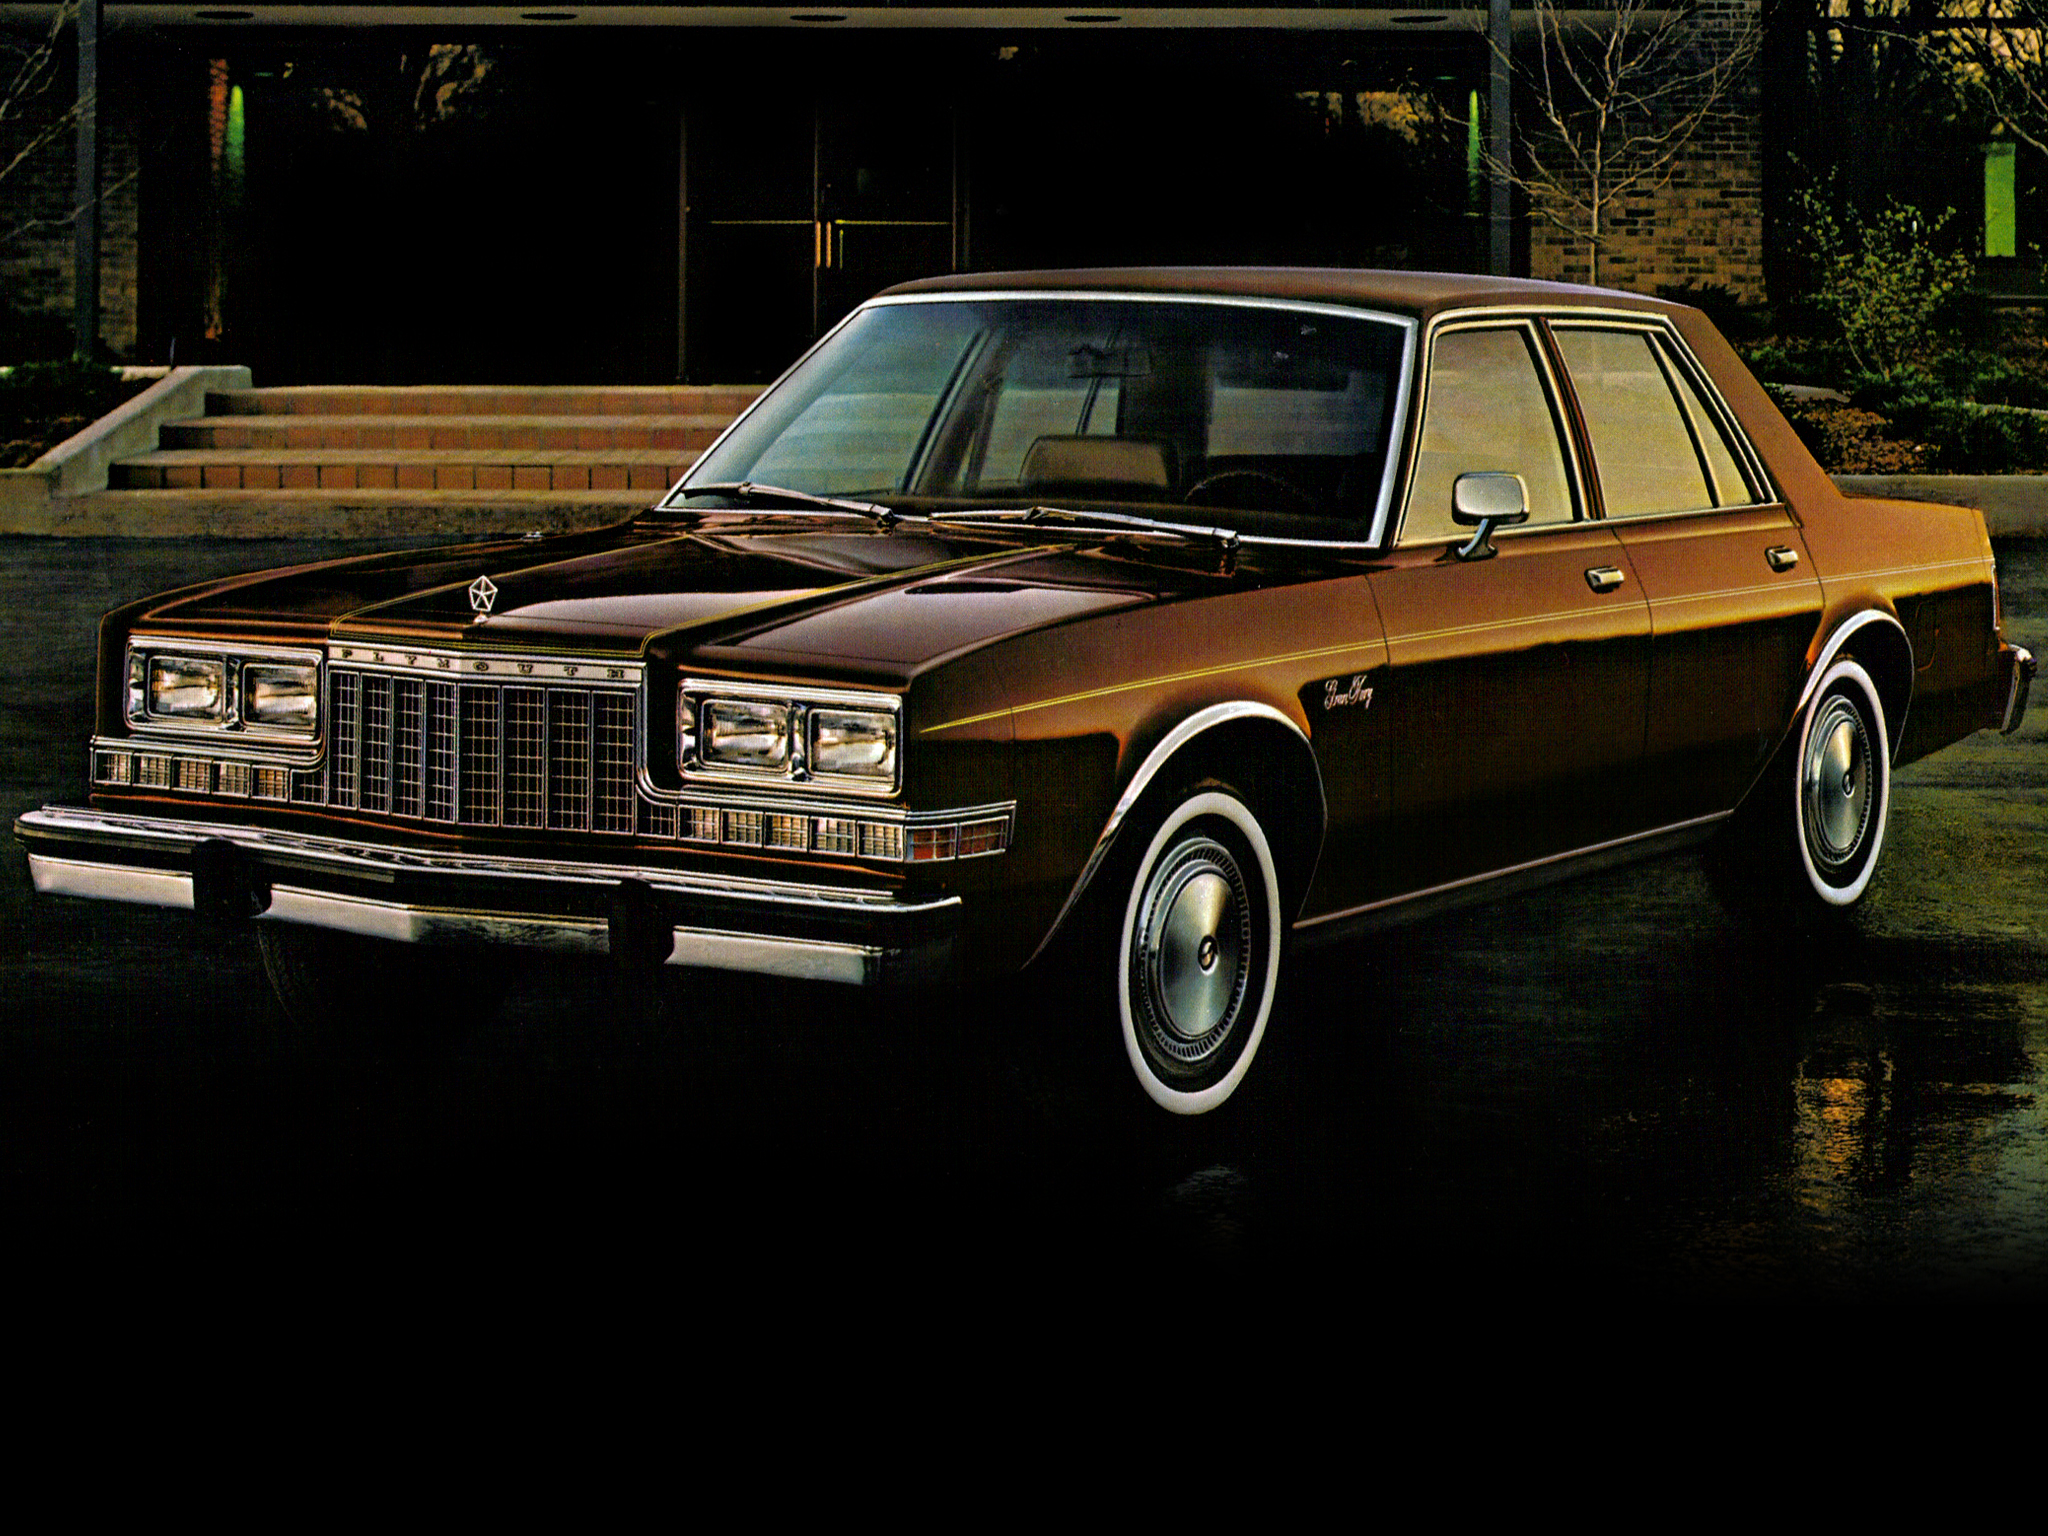 1988 Plymouth Gran Fury #9